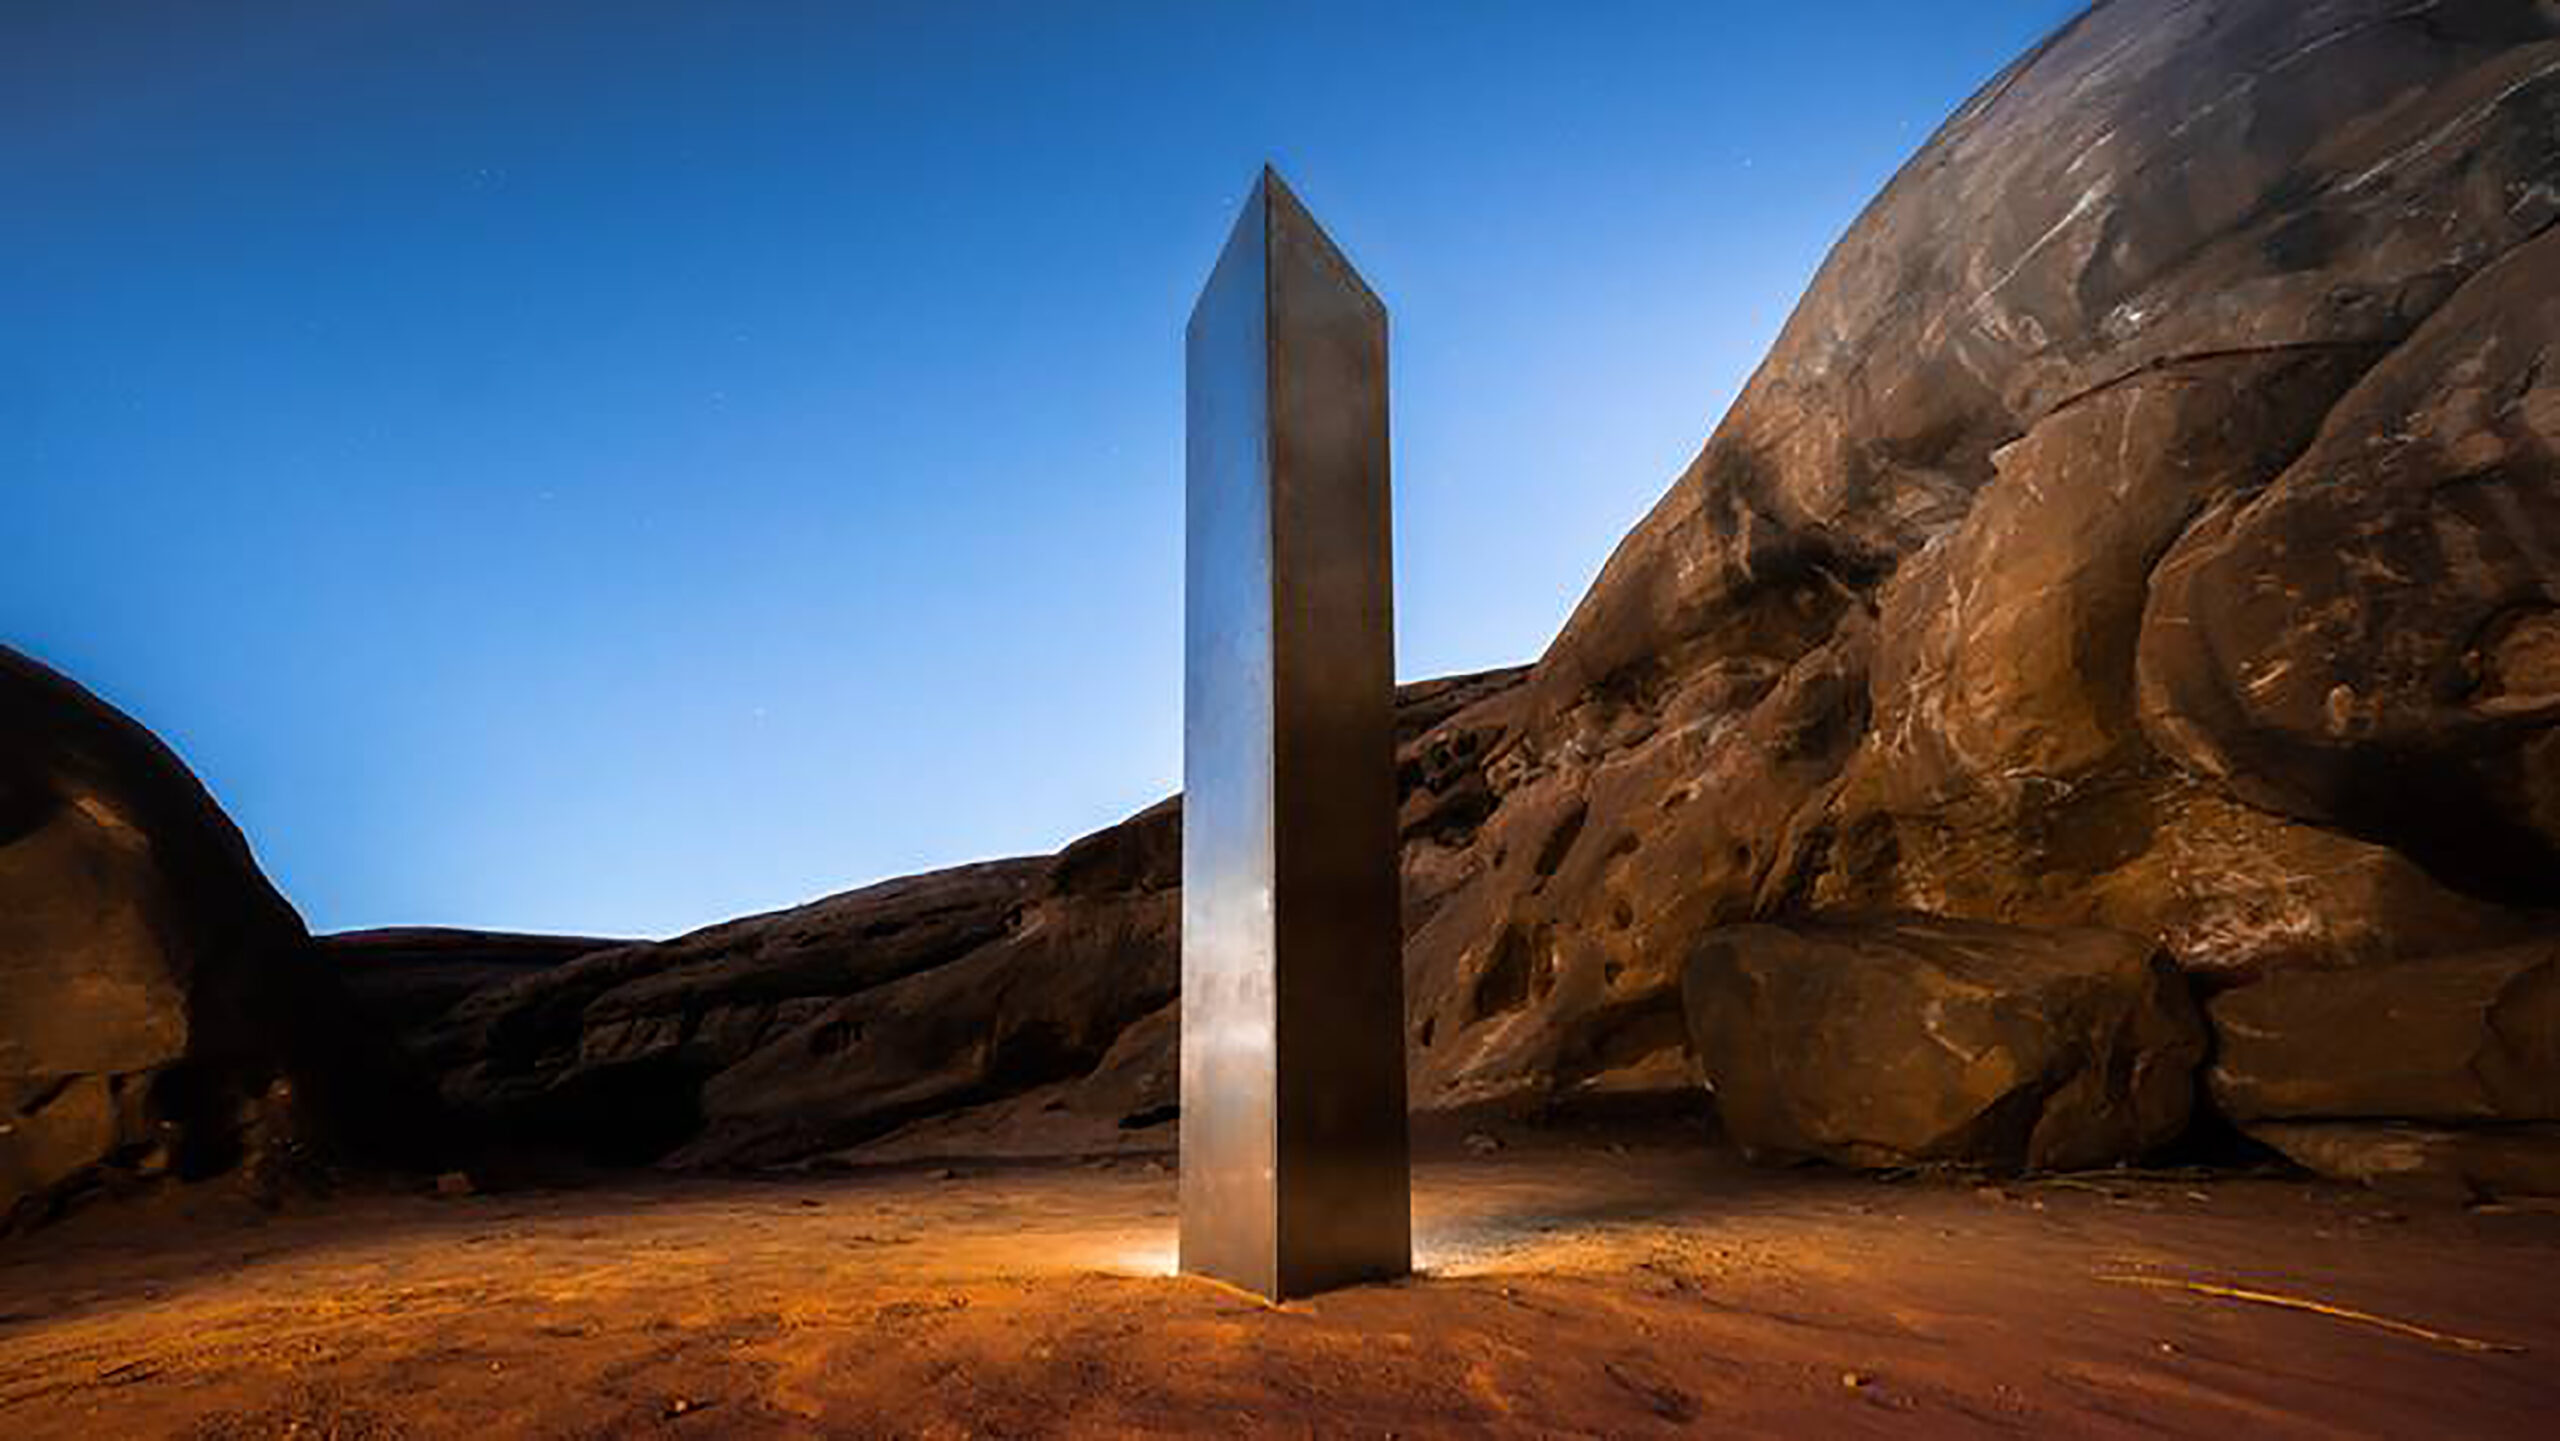 Artists group takes credit for mysterious Utah monolith